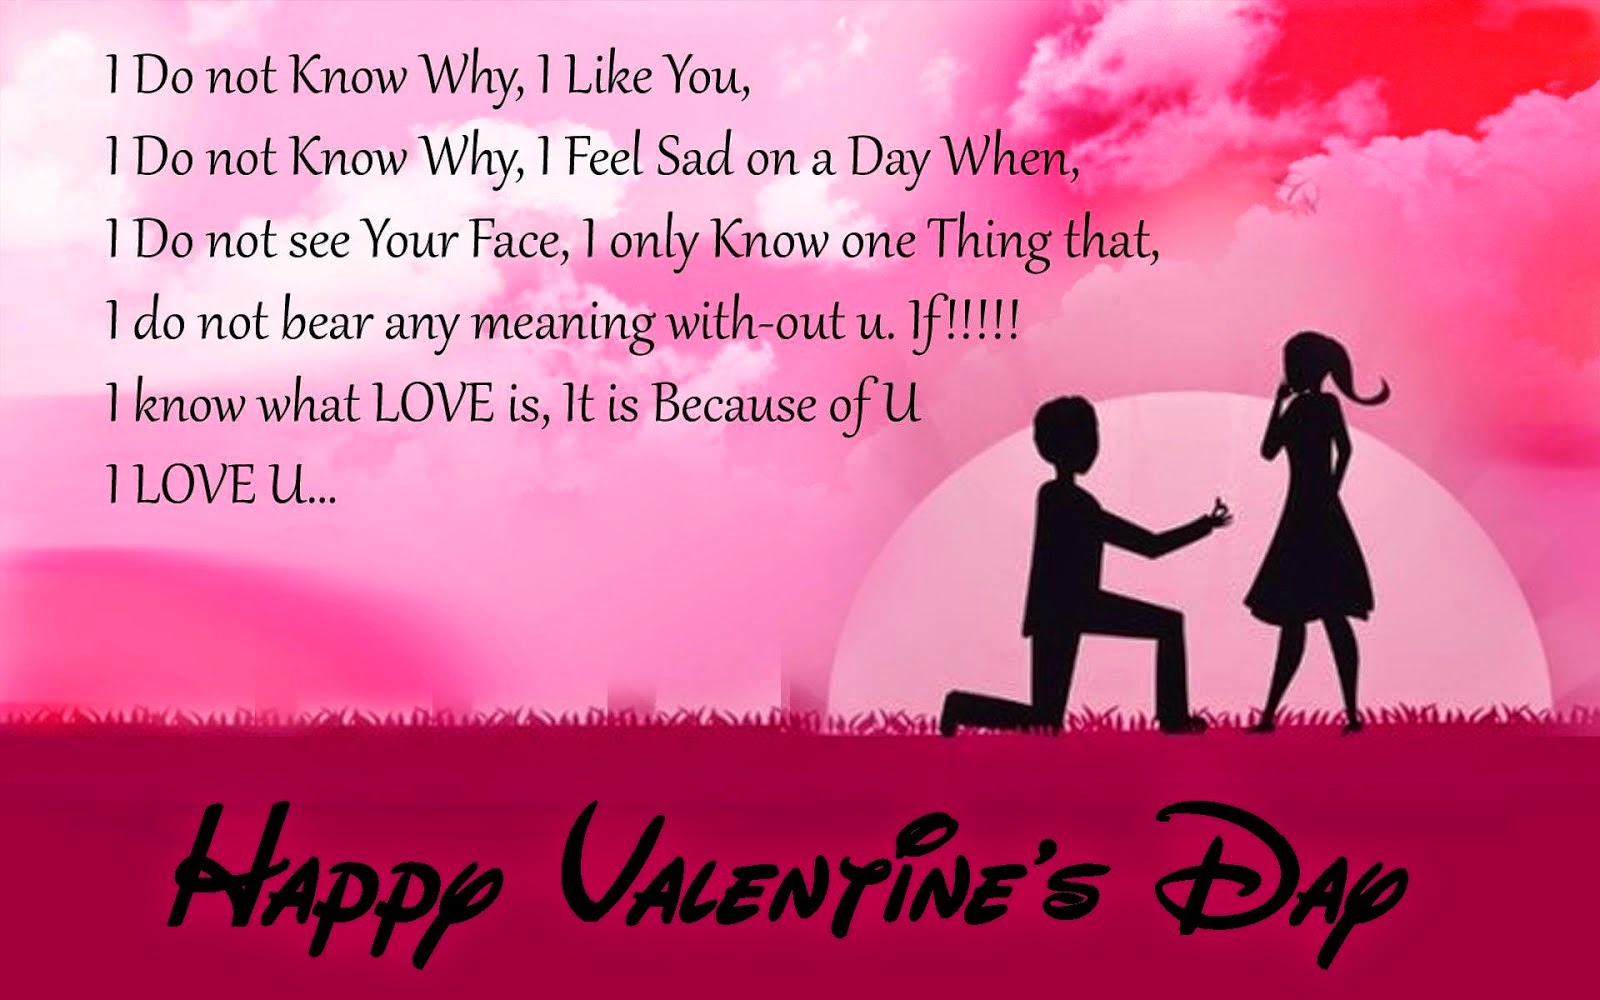 Happy valentines day messages greetings wishes upcomevent happy valentines day greetings m4hsunfo